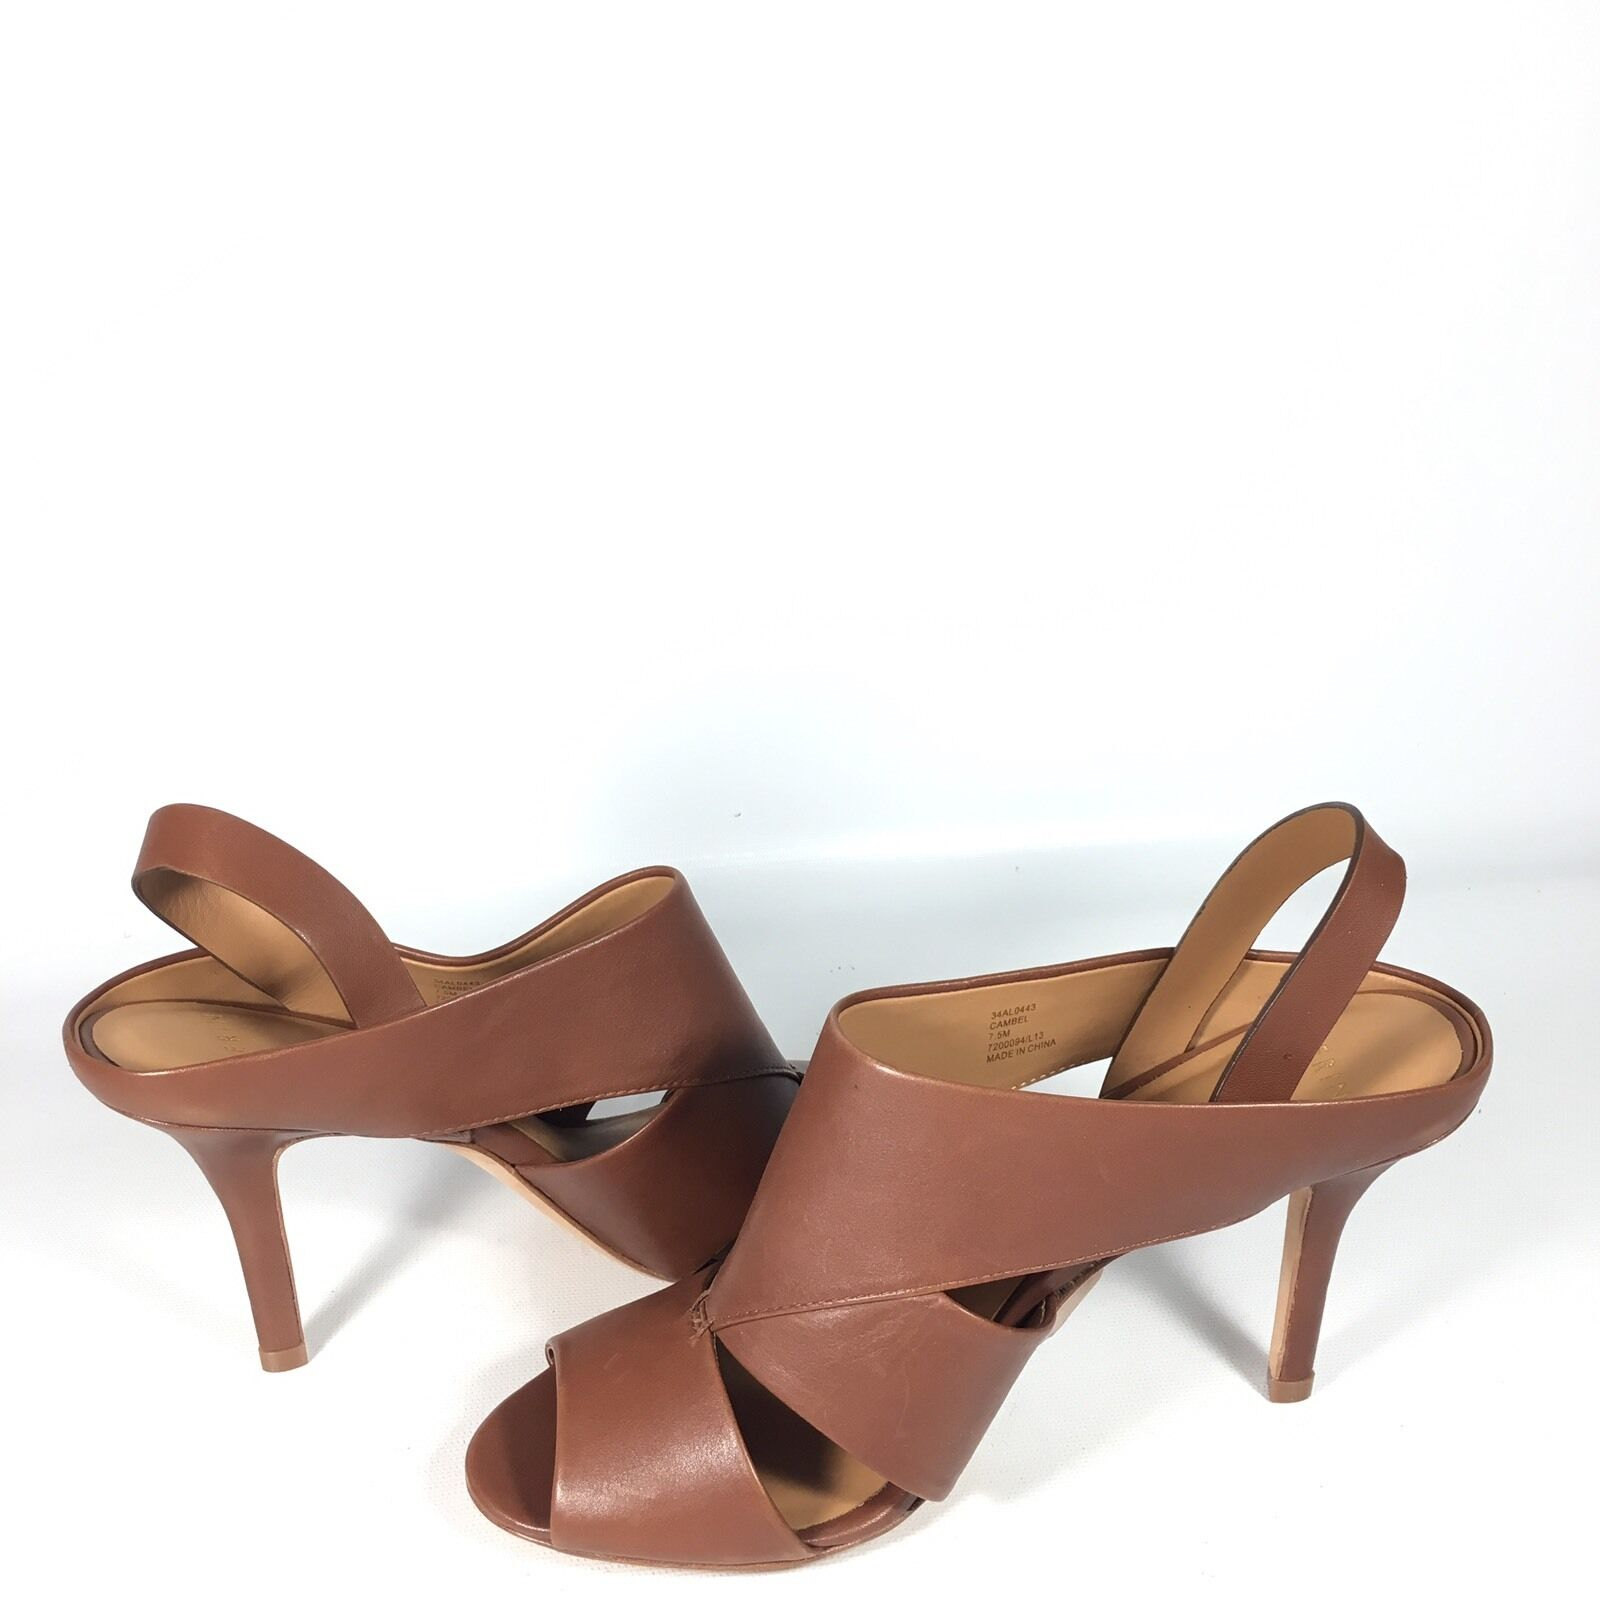 Aerin  Cambel  Women's Size 7.5 M Brown Leather Leather Leather Sandal Heels 407d7d